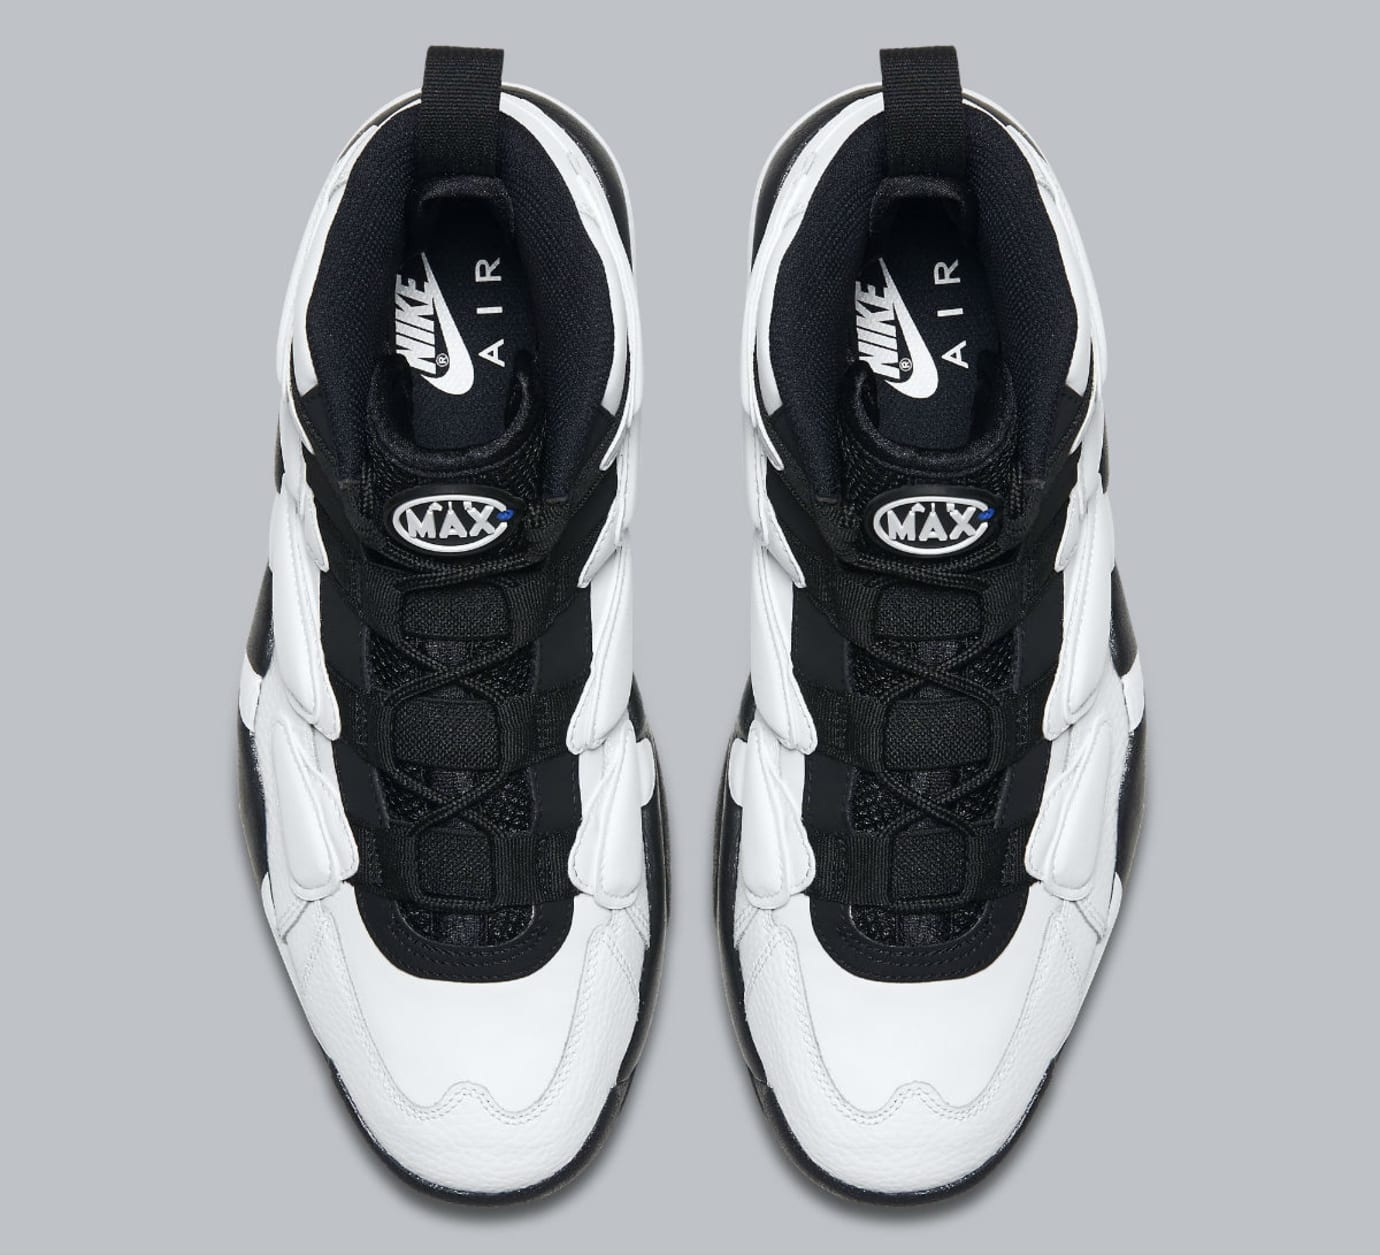 Nike Air Max2 Uptempo White/Black Release Date Top 922934-102